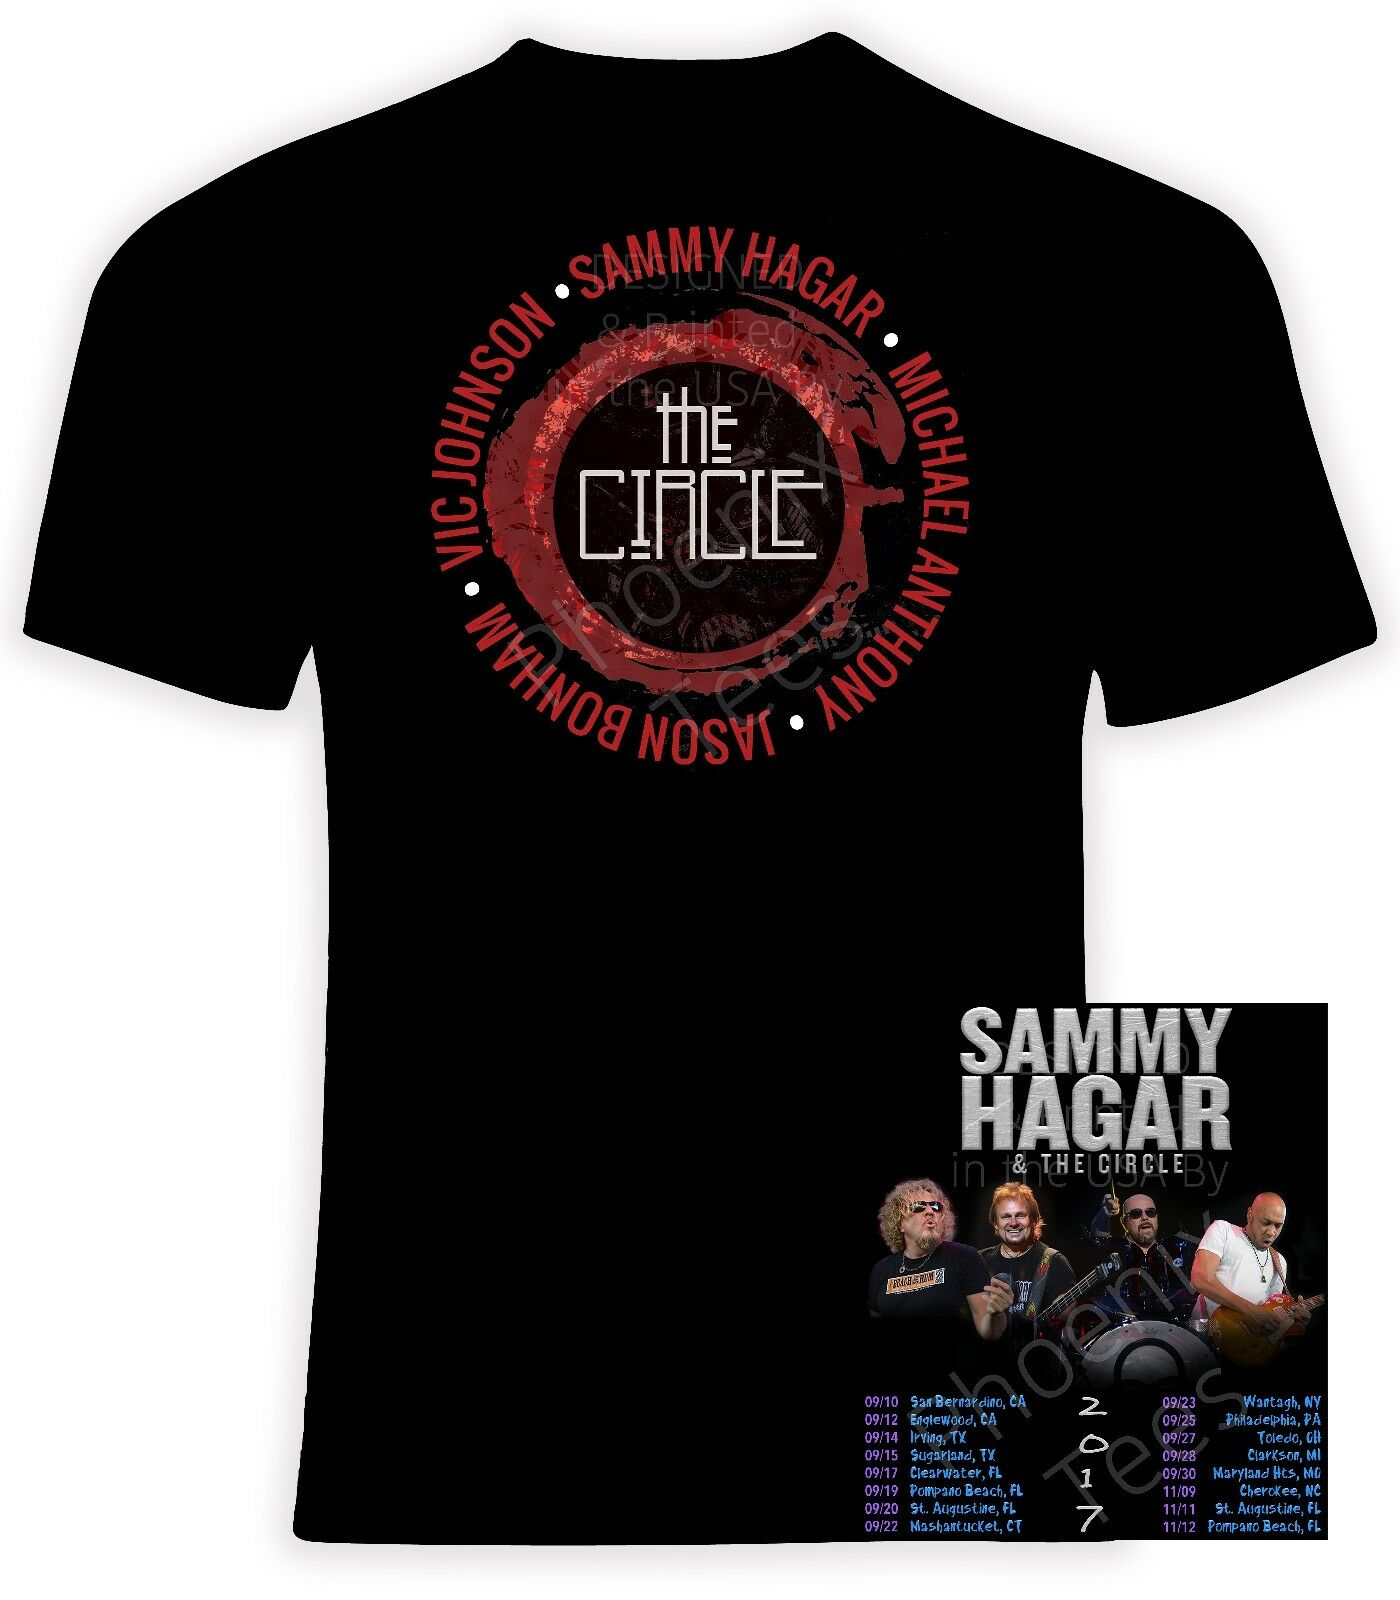 Sammy Hagar and the Circle 2017 Concert t shirt, Sizes S-6X, Short Long Sleeve